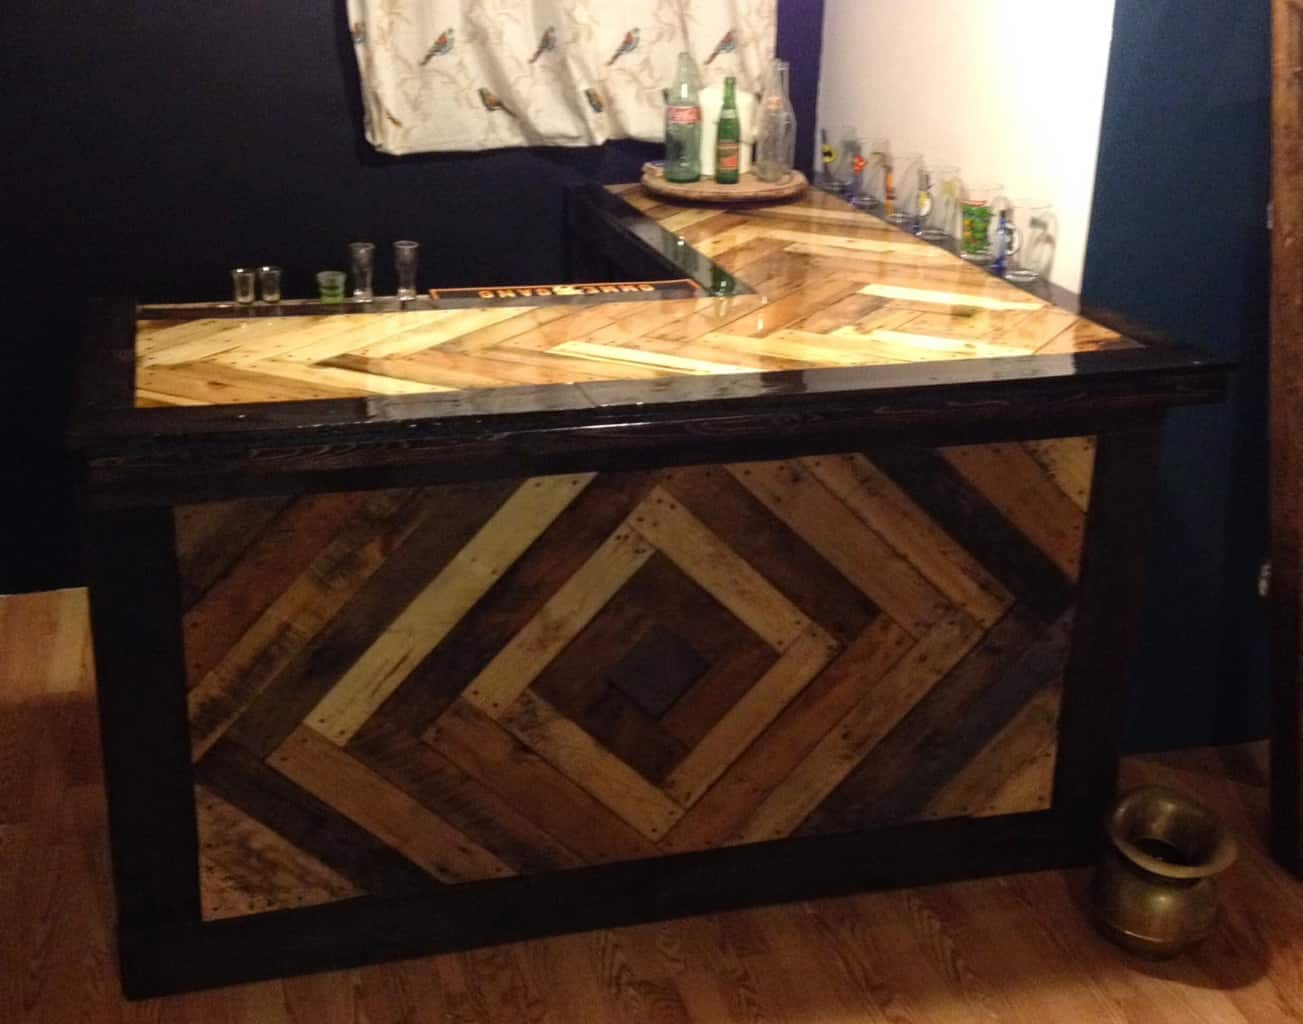 15 Epic Pallet Bar Ideas To Transform Your Space